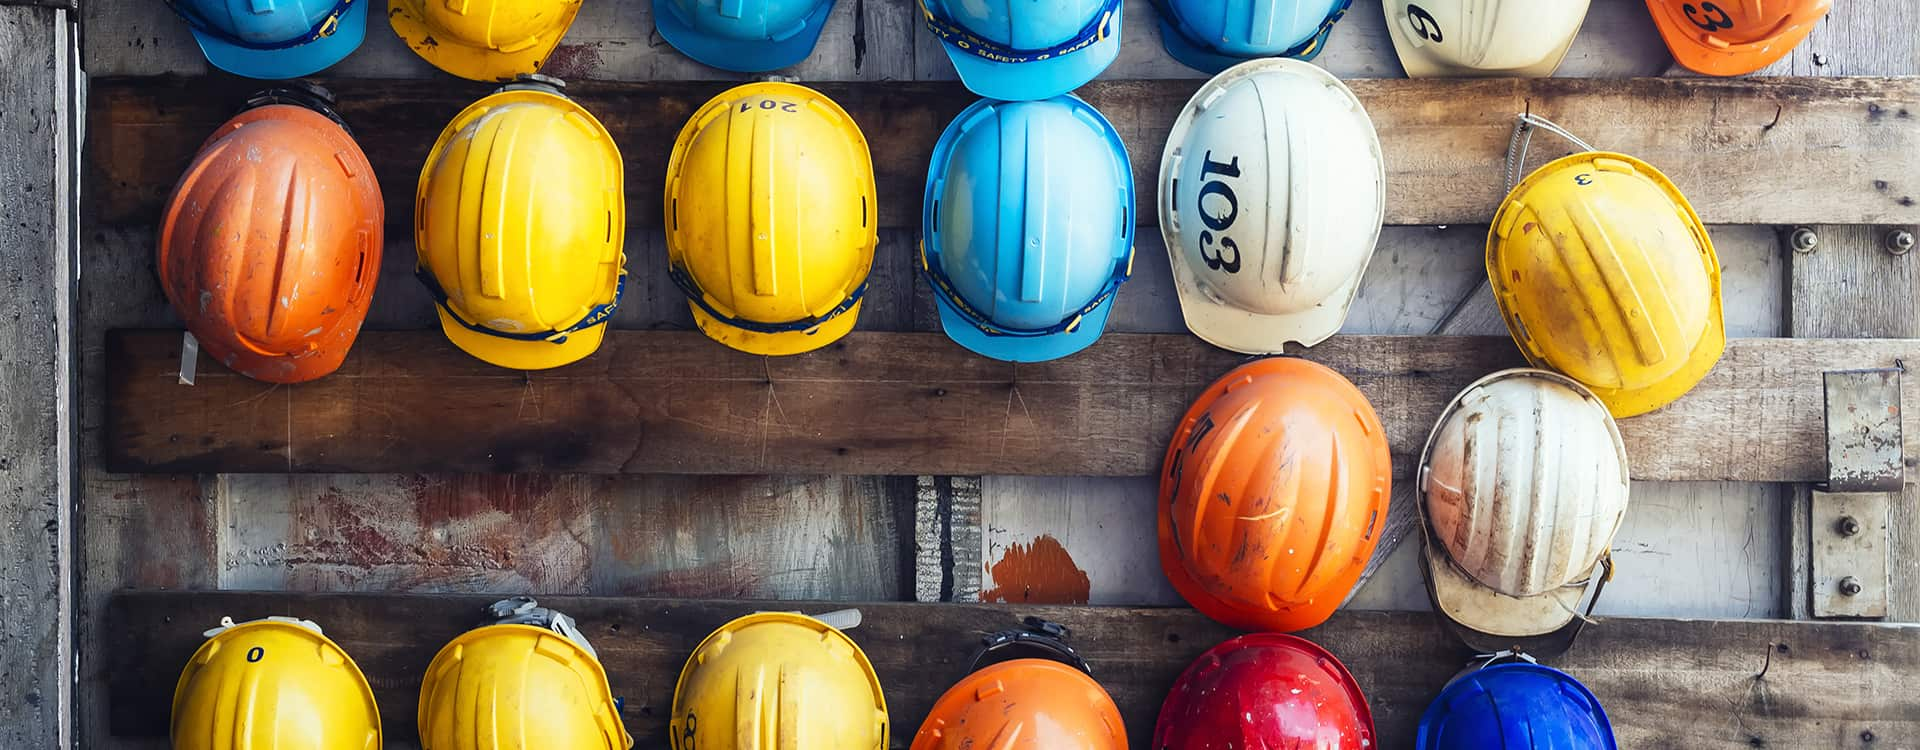 Important Occupational Health and Safety (OHS) changes for brokerages Image